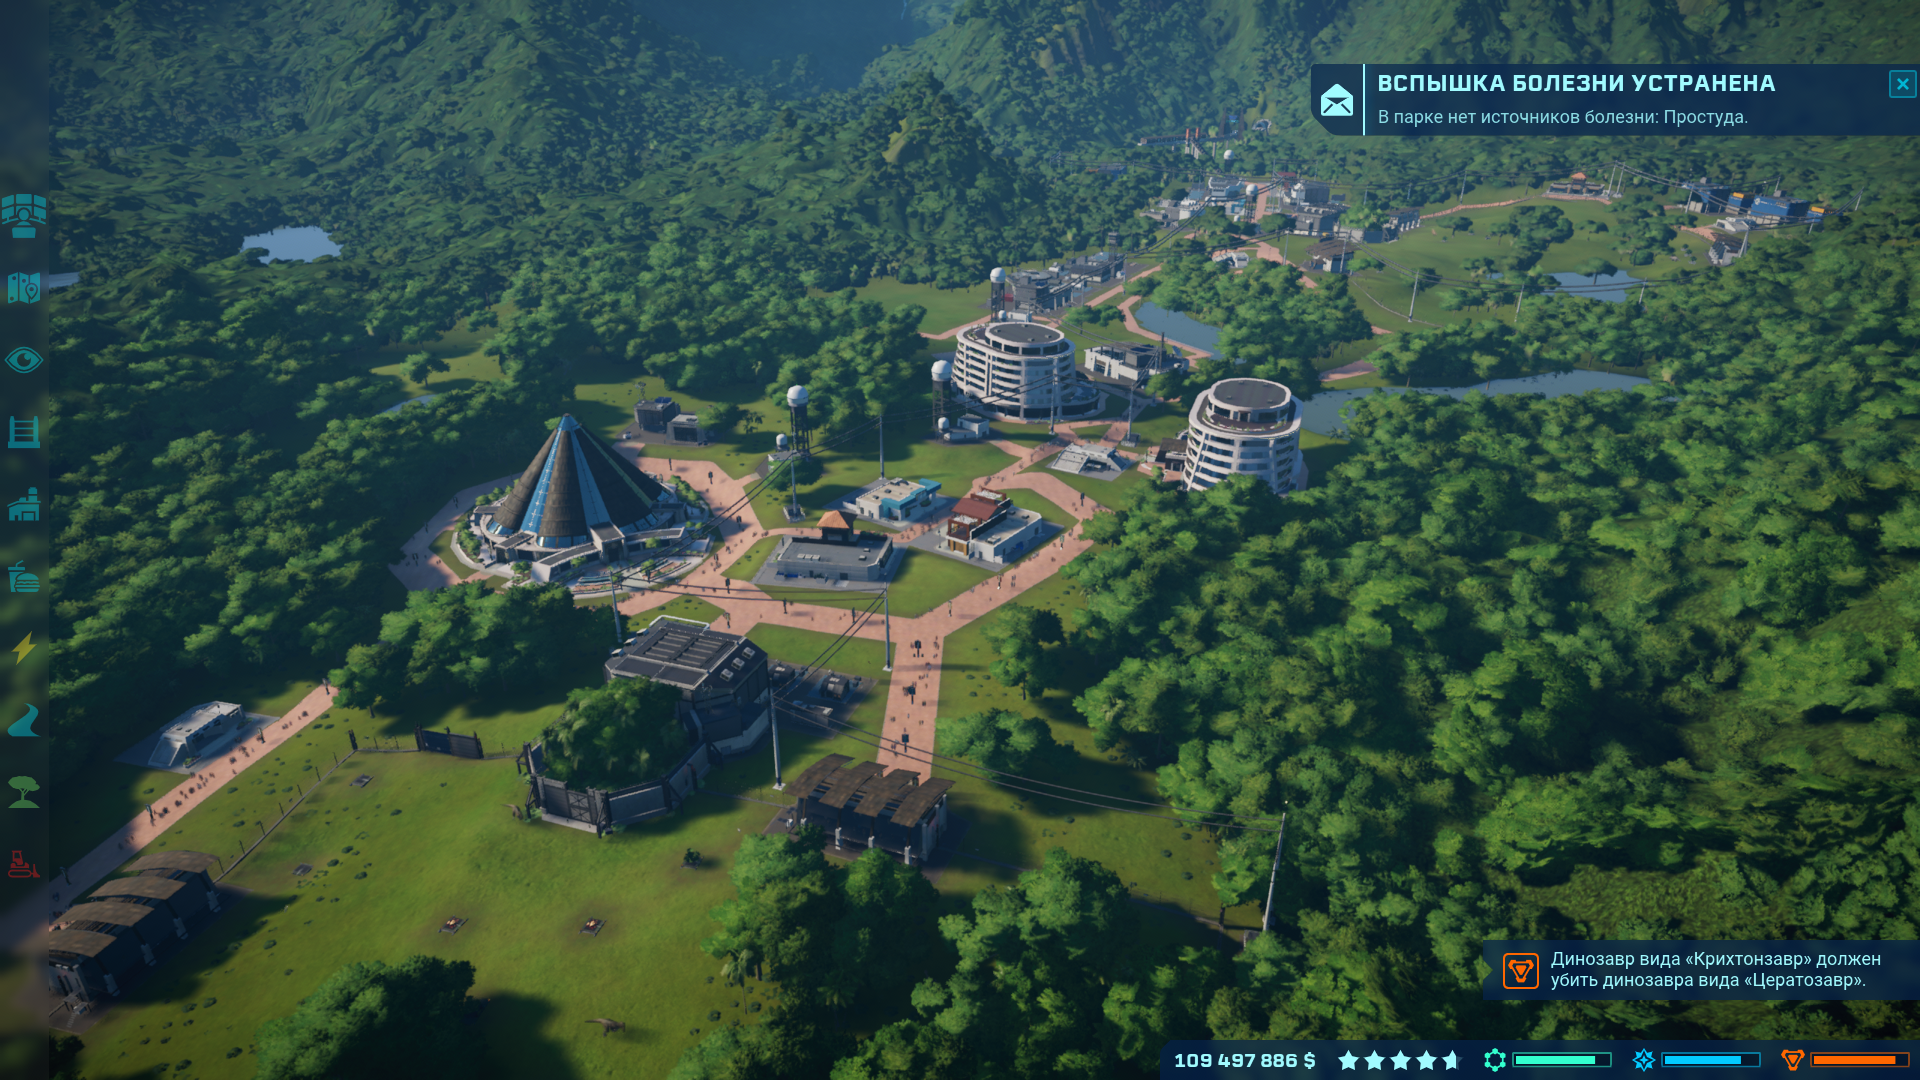 Jurassic World Evolution Screenshot 2018.09.27 - 13.54.54.06.png - Jurassic World Evolution